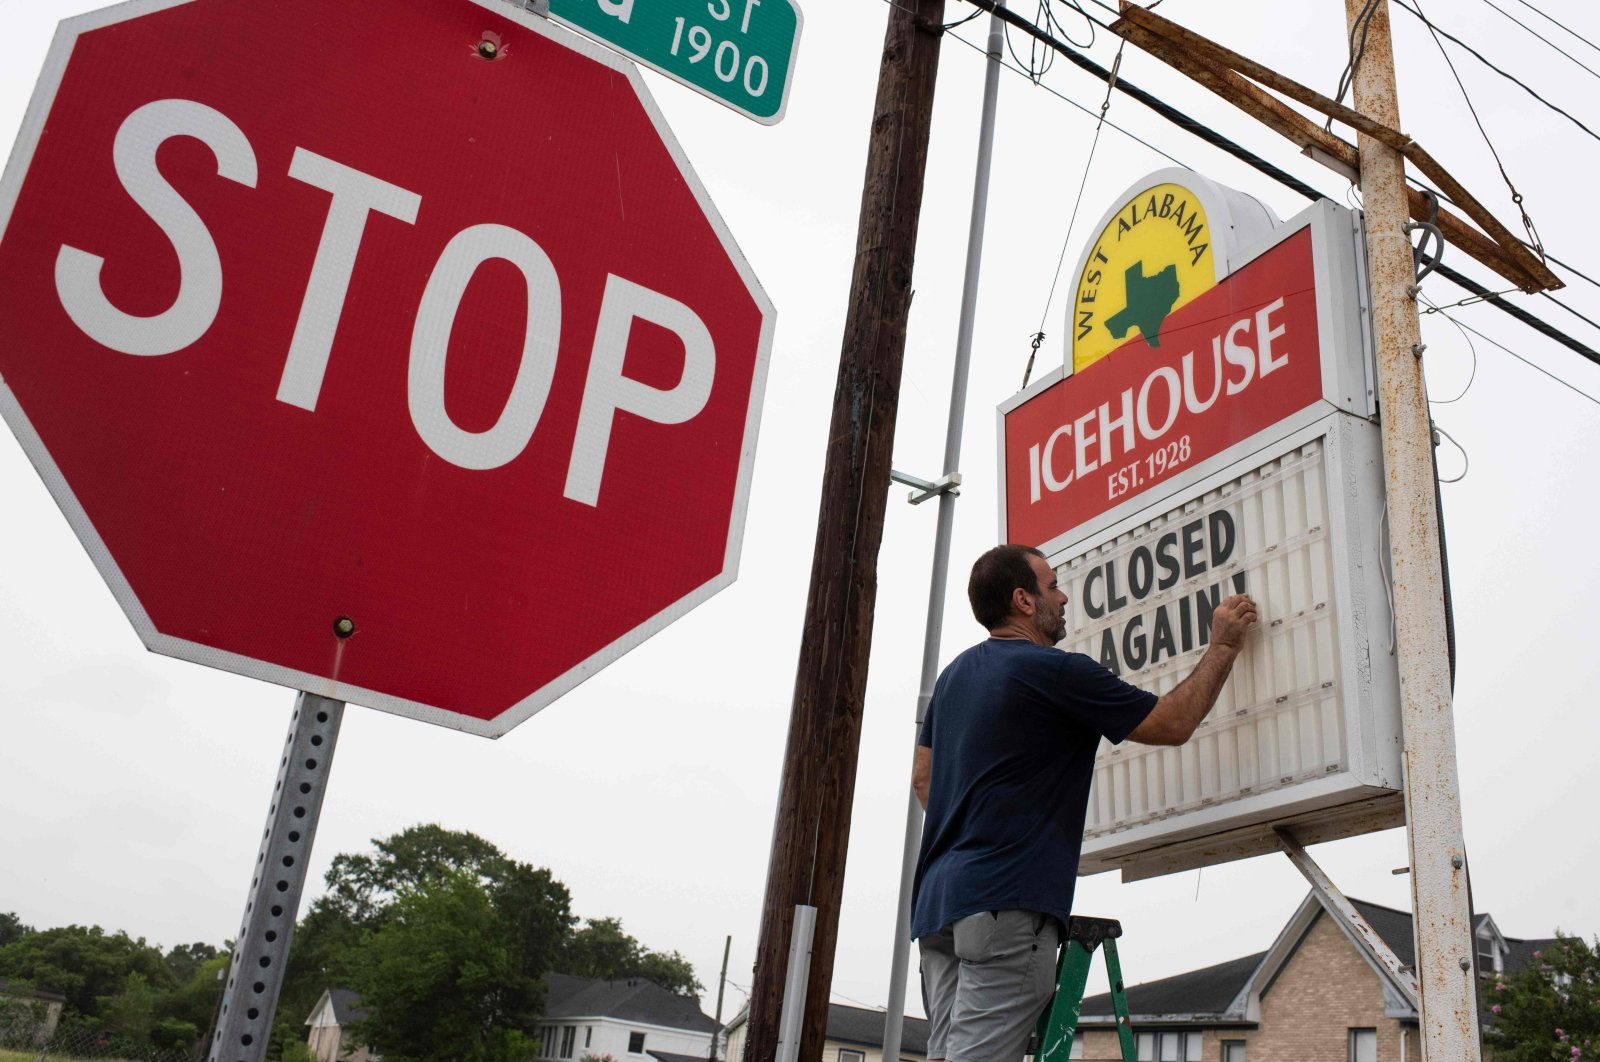 """Bar owner Petros J Markantonis changes the marquee outside his bar to """"Closed Again"""" at the West Alabama Ice House in Houston, Texas, June 26, 2020. (AFP)"""